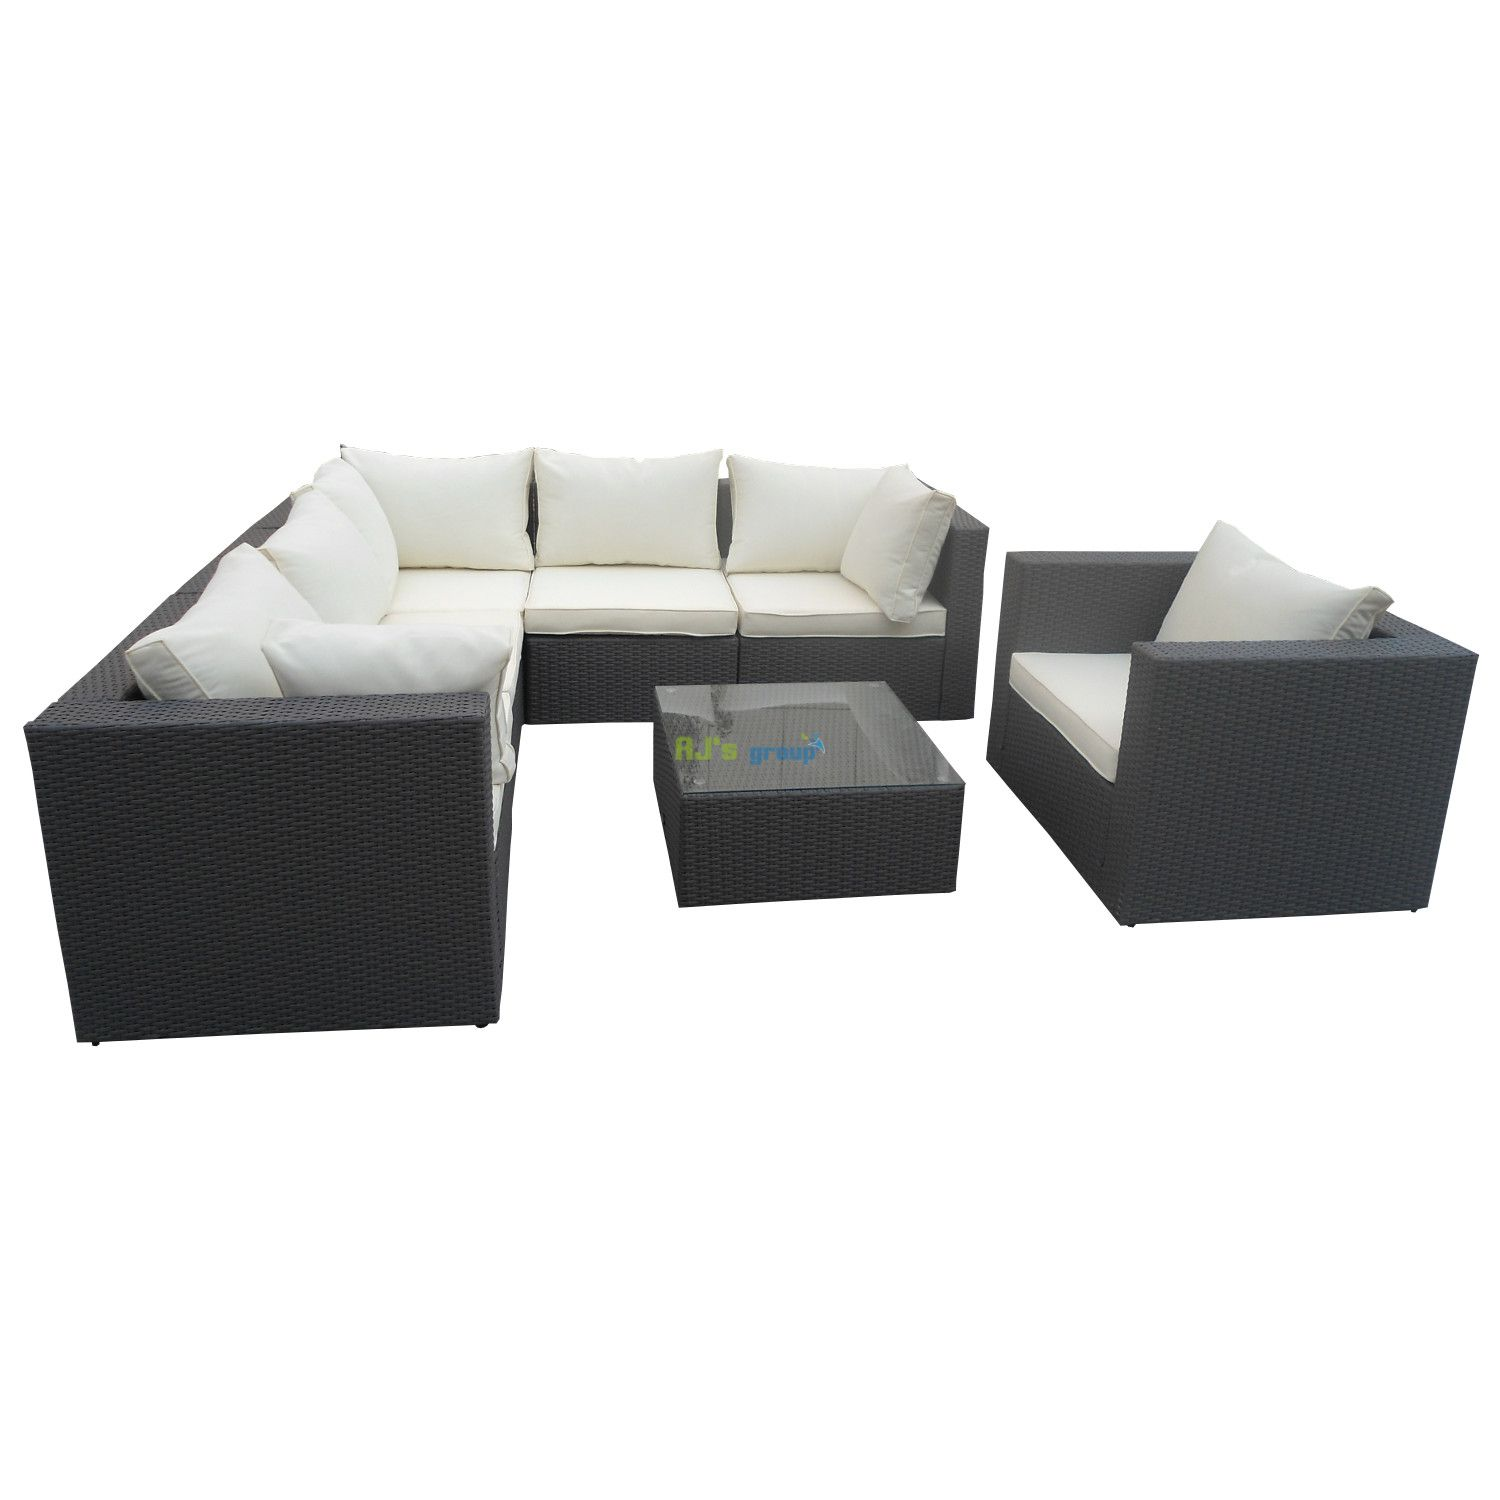 gartenmobel new jersey interessante ideen. Black Bedroom Furniture Sets. Home Design Ideas